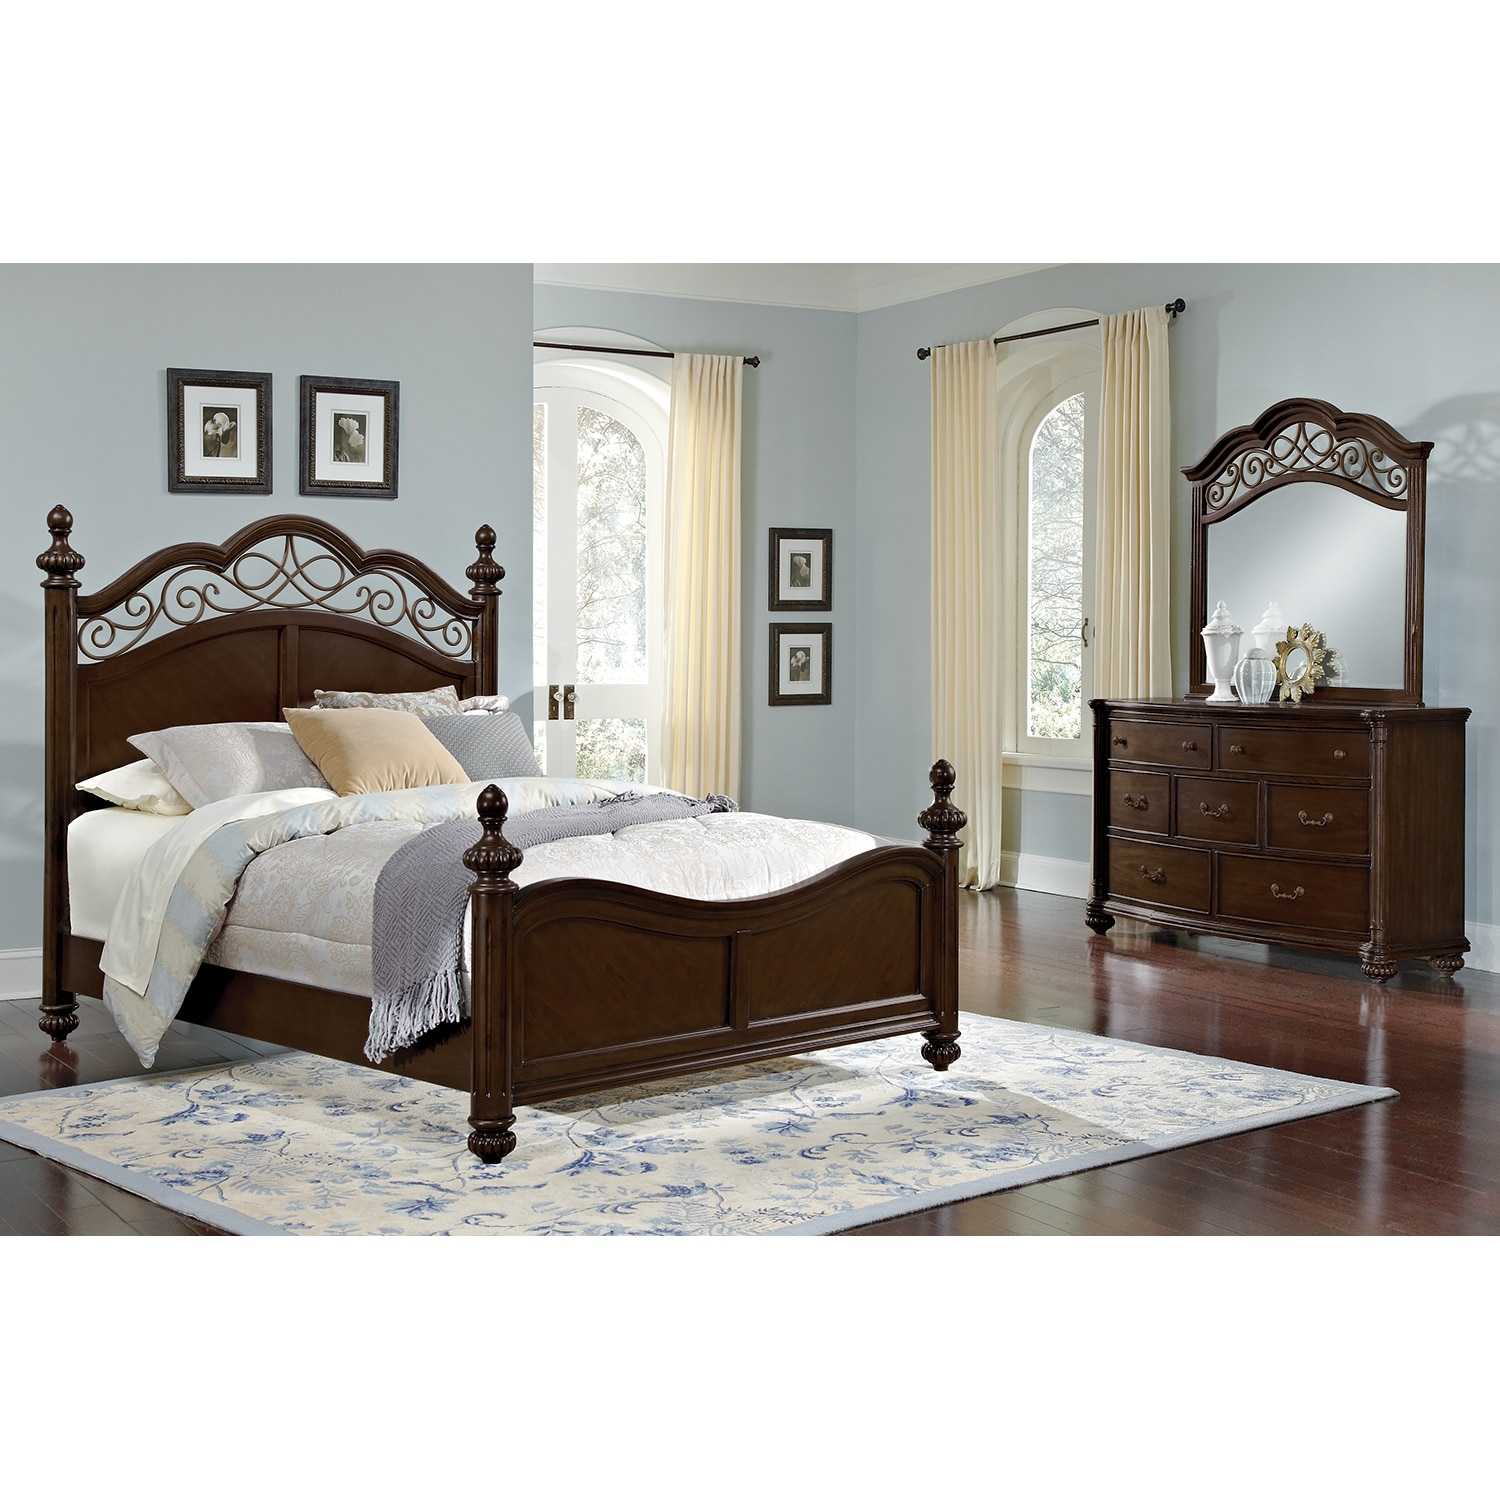 lowell 5 pc queen bedroom furniture com 17687 | 278003